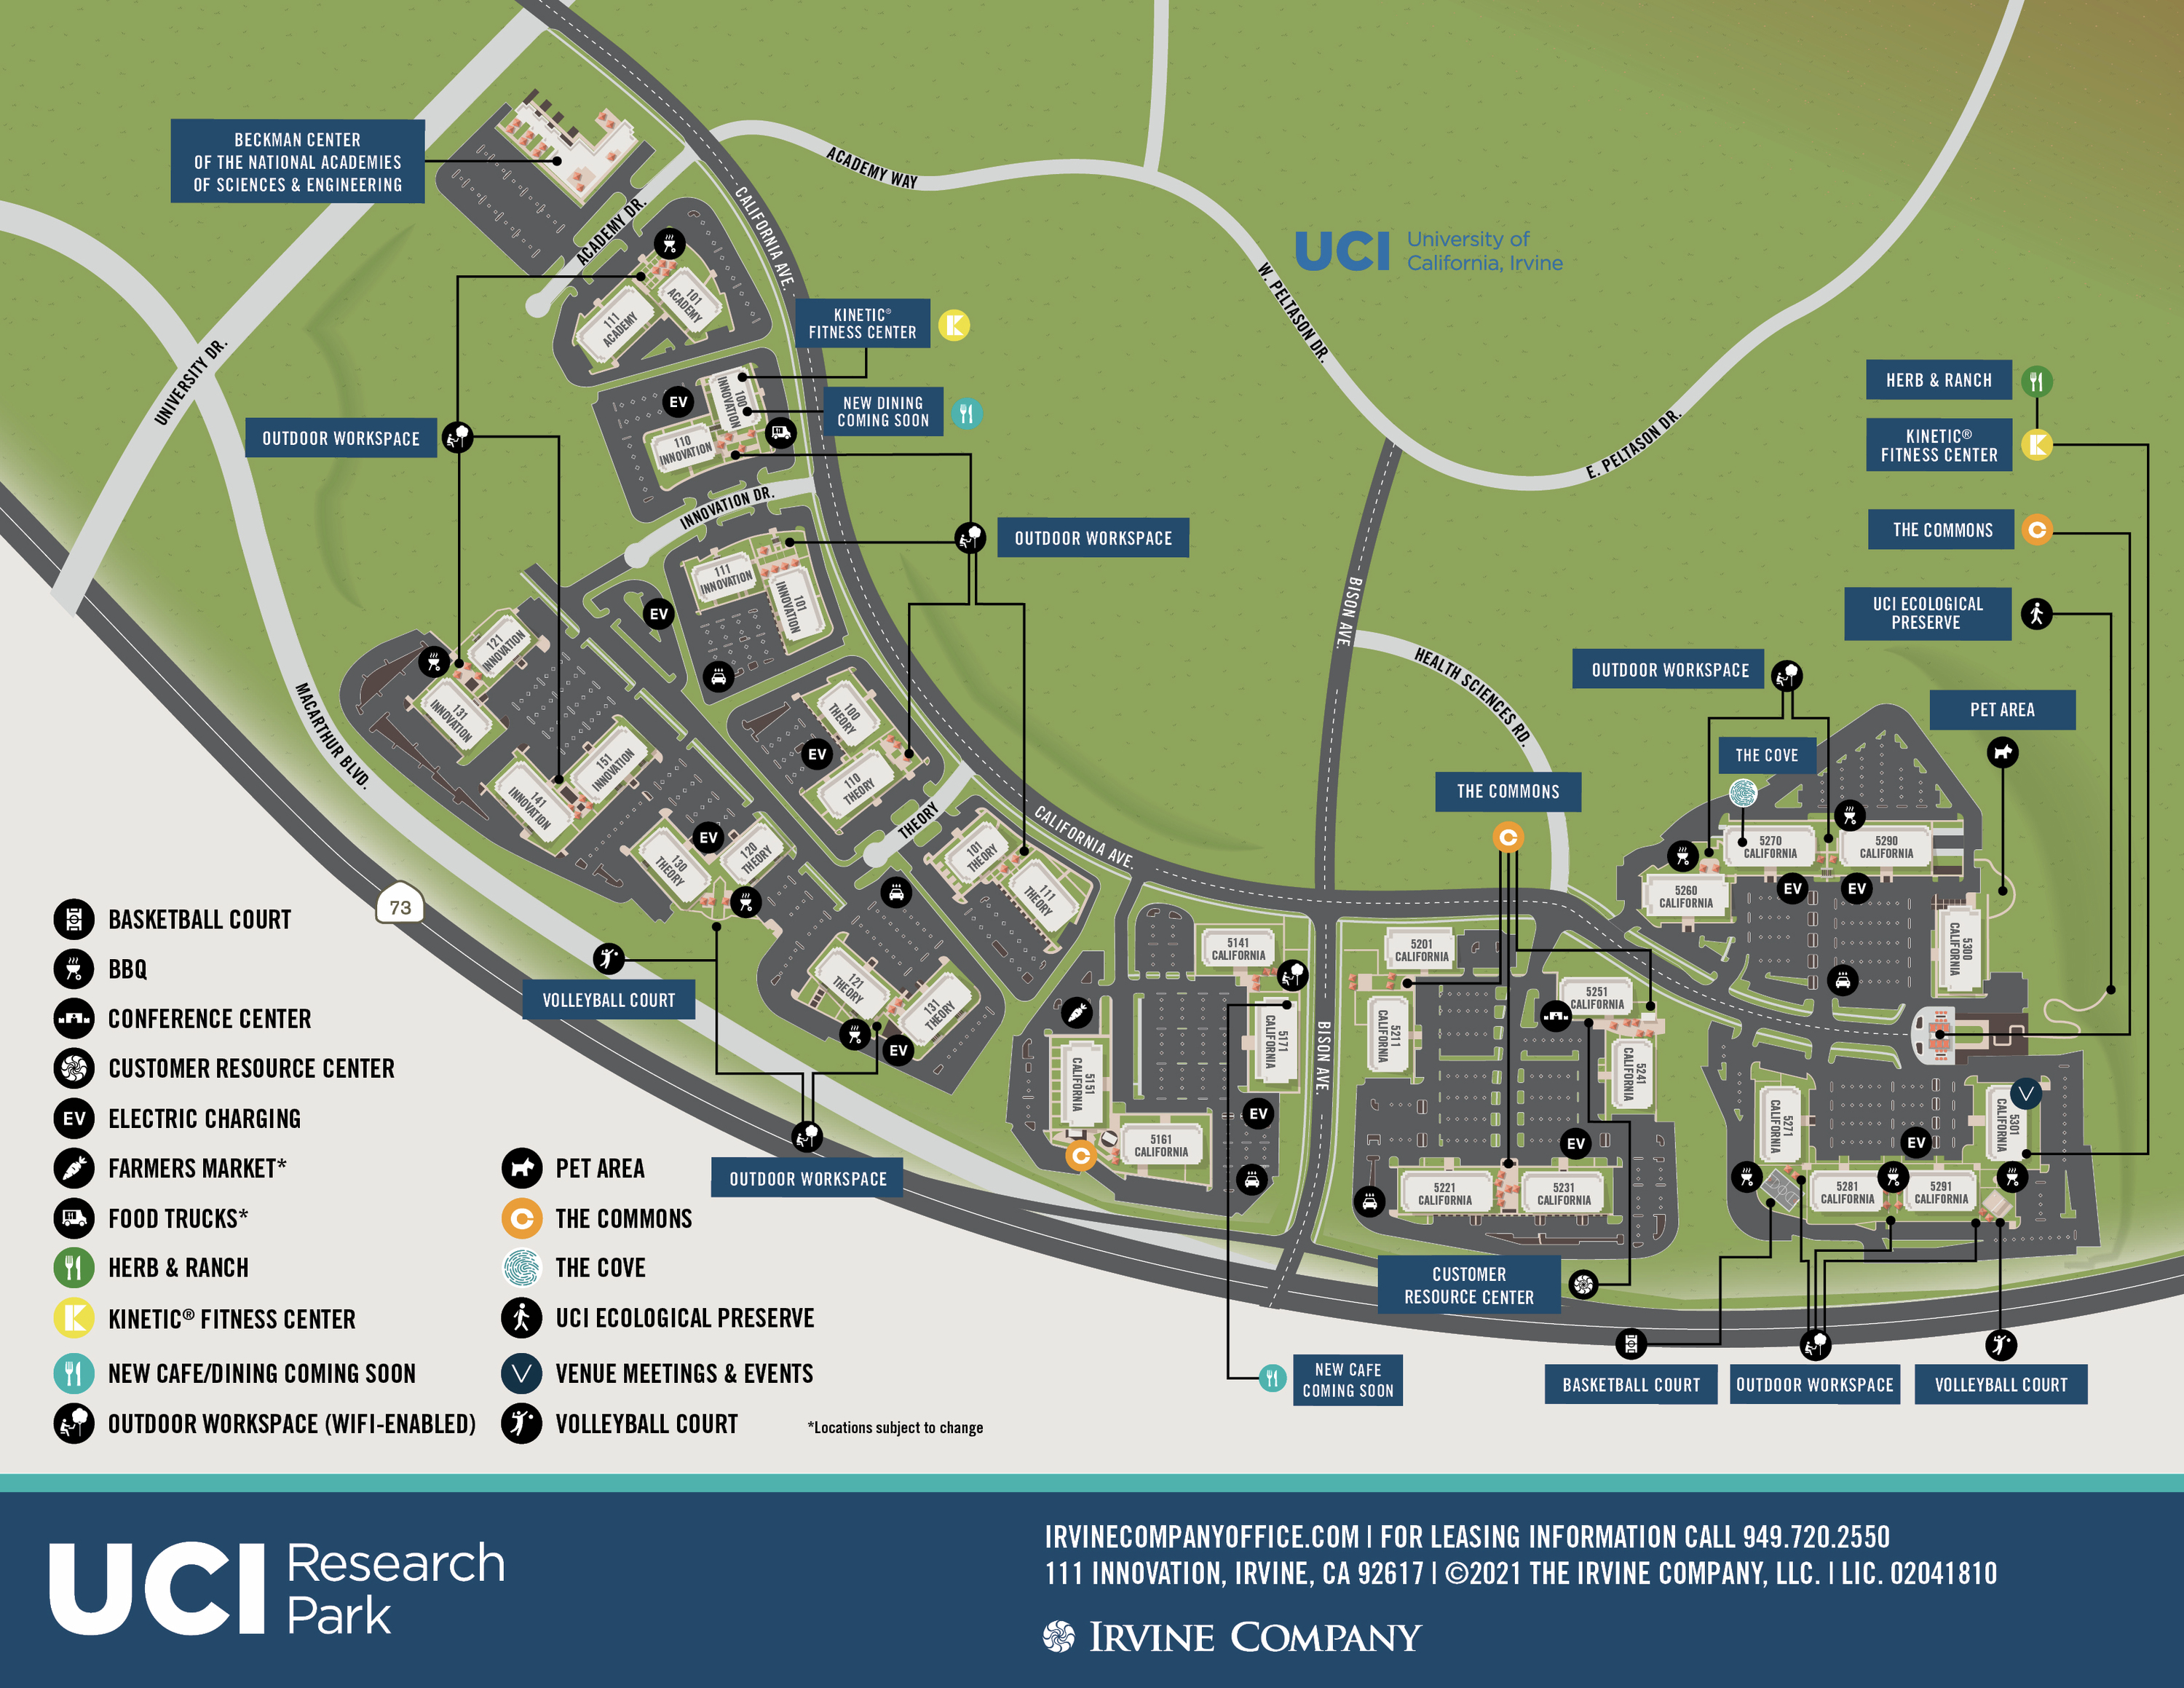 Site Map for UCIRP located in Irvine, CA